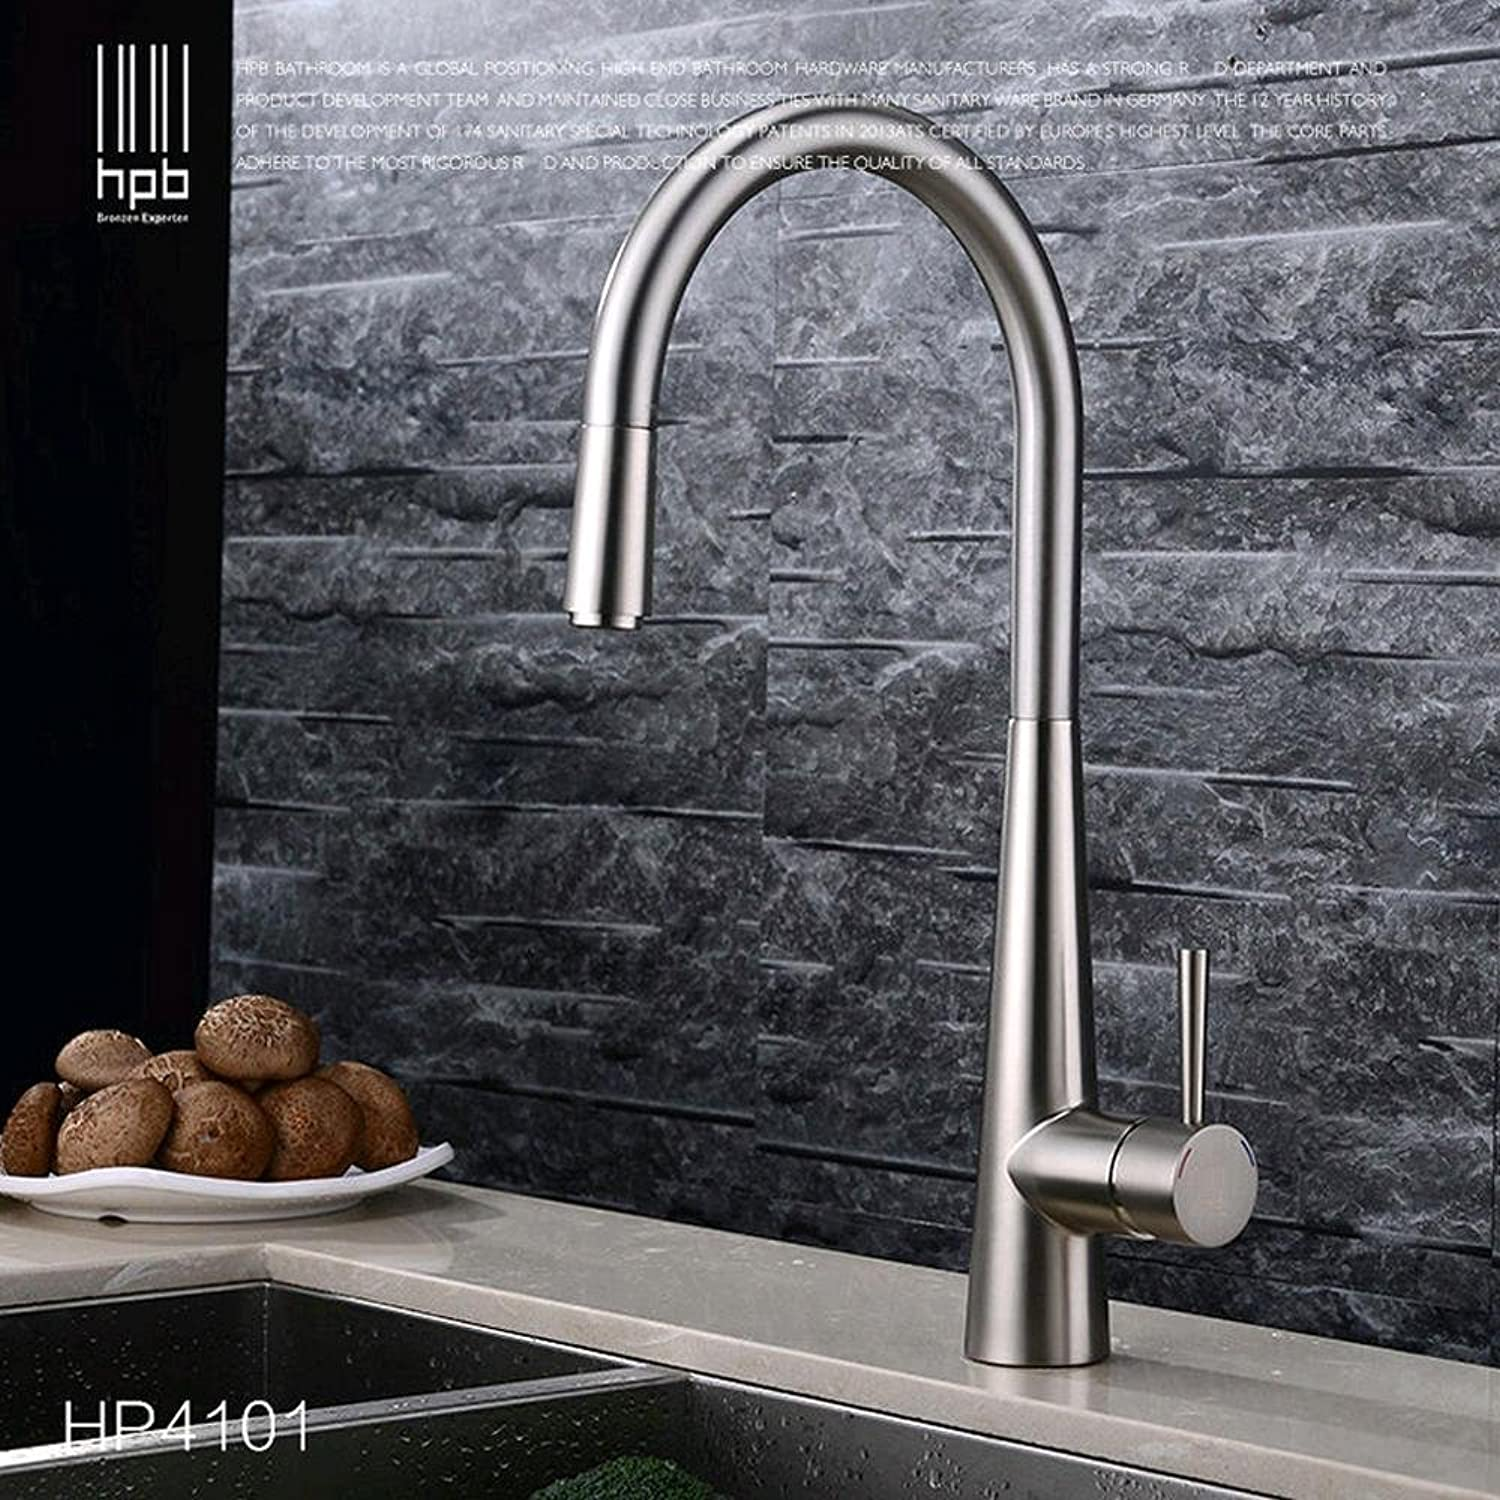 BingHaiY Brass Brushed Chrome Pull Out Deck Mounted Hot And Cold Water Kitchen Mixer Tap Pb-free Sink Faucet torneira cozinha